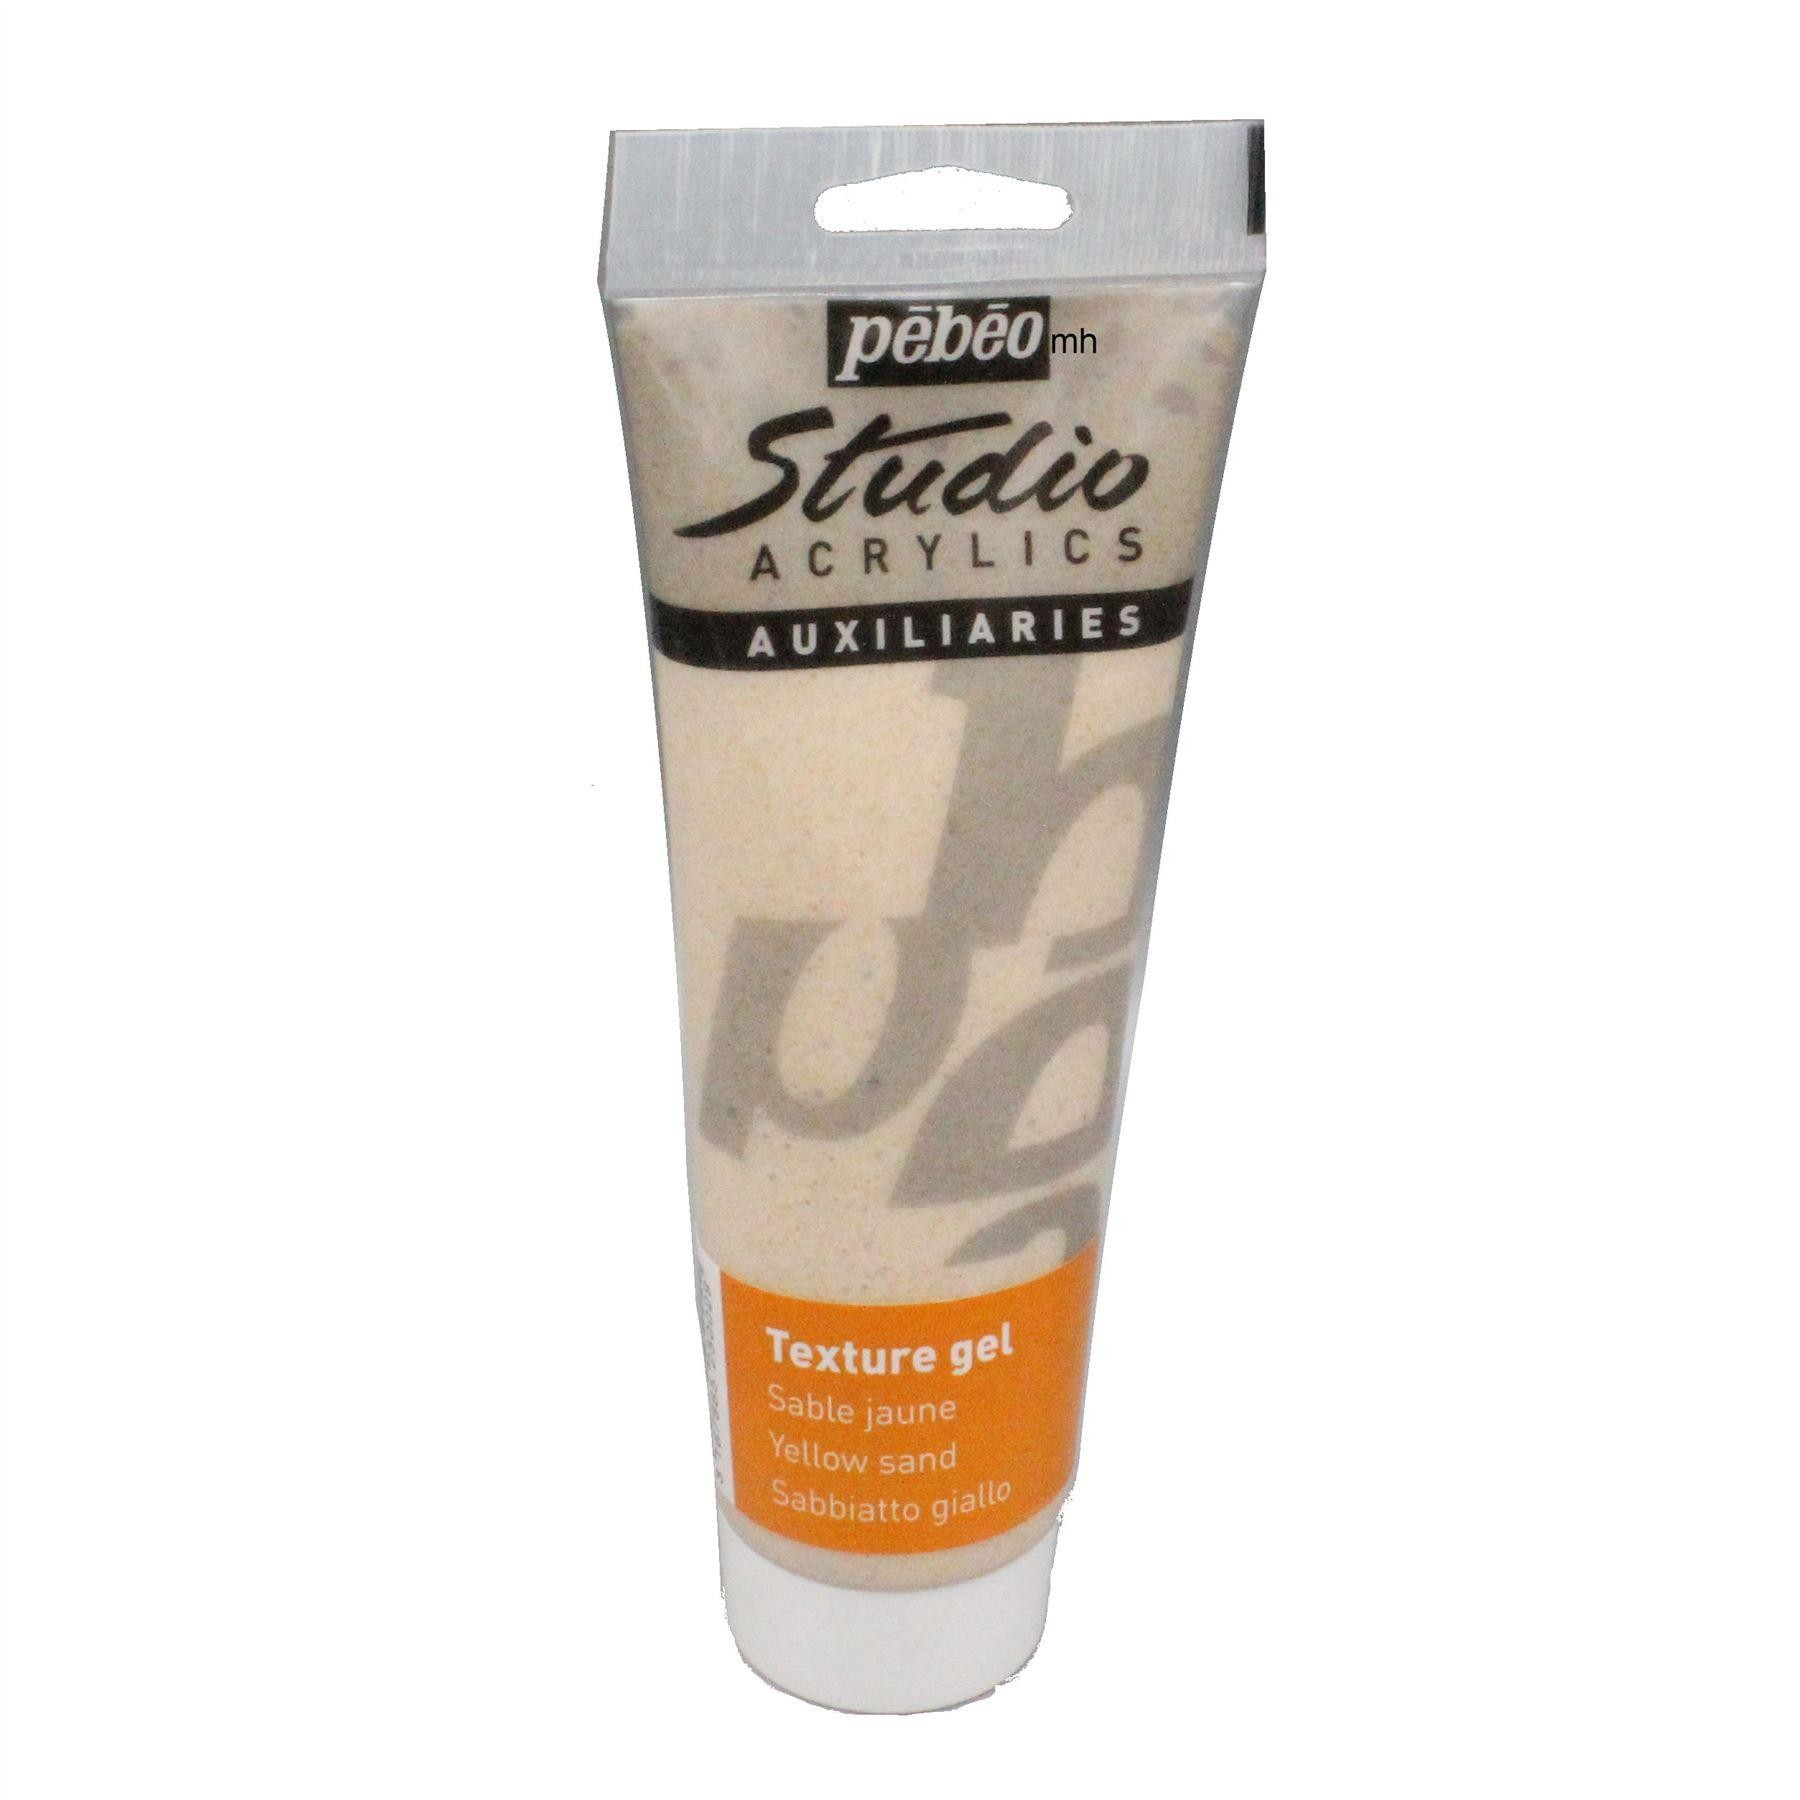 Pebeo Studio Sand texture Gel 250ml tubes, White, Black or Yellow